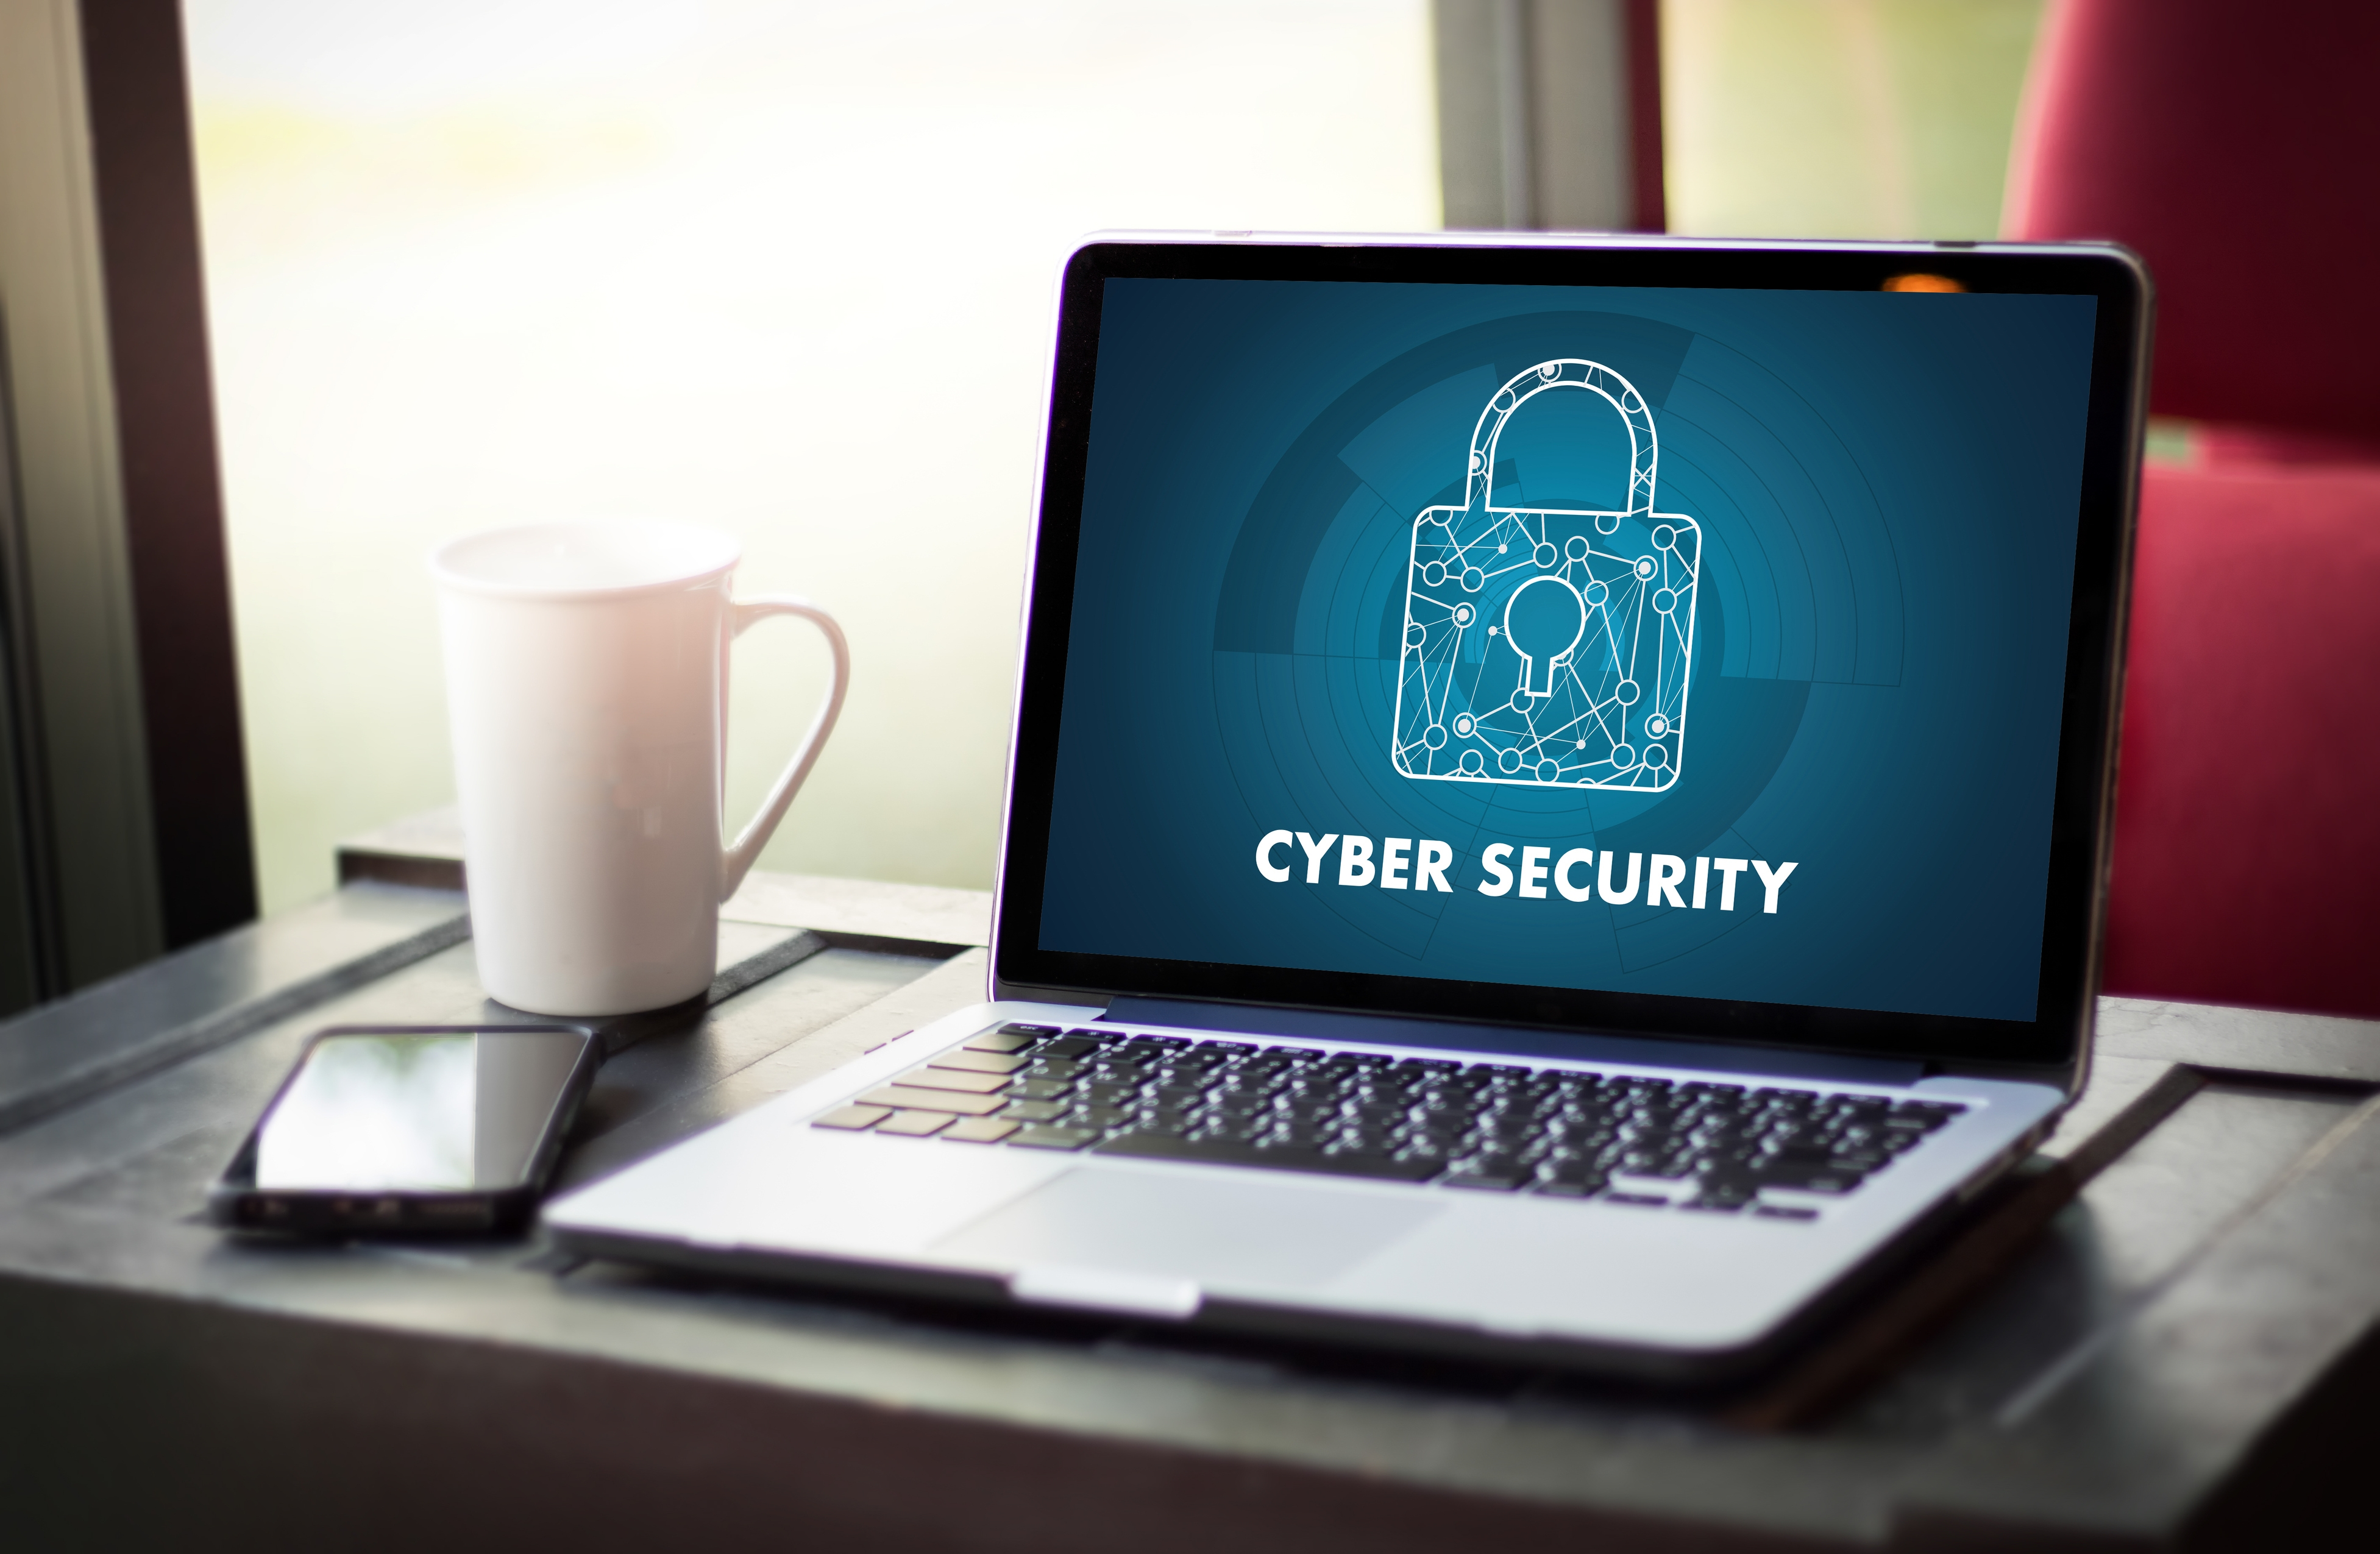 Your cyber security is in your hands.